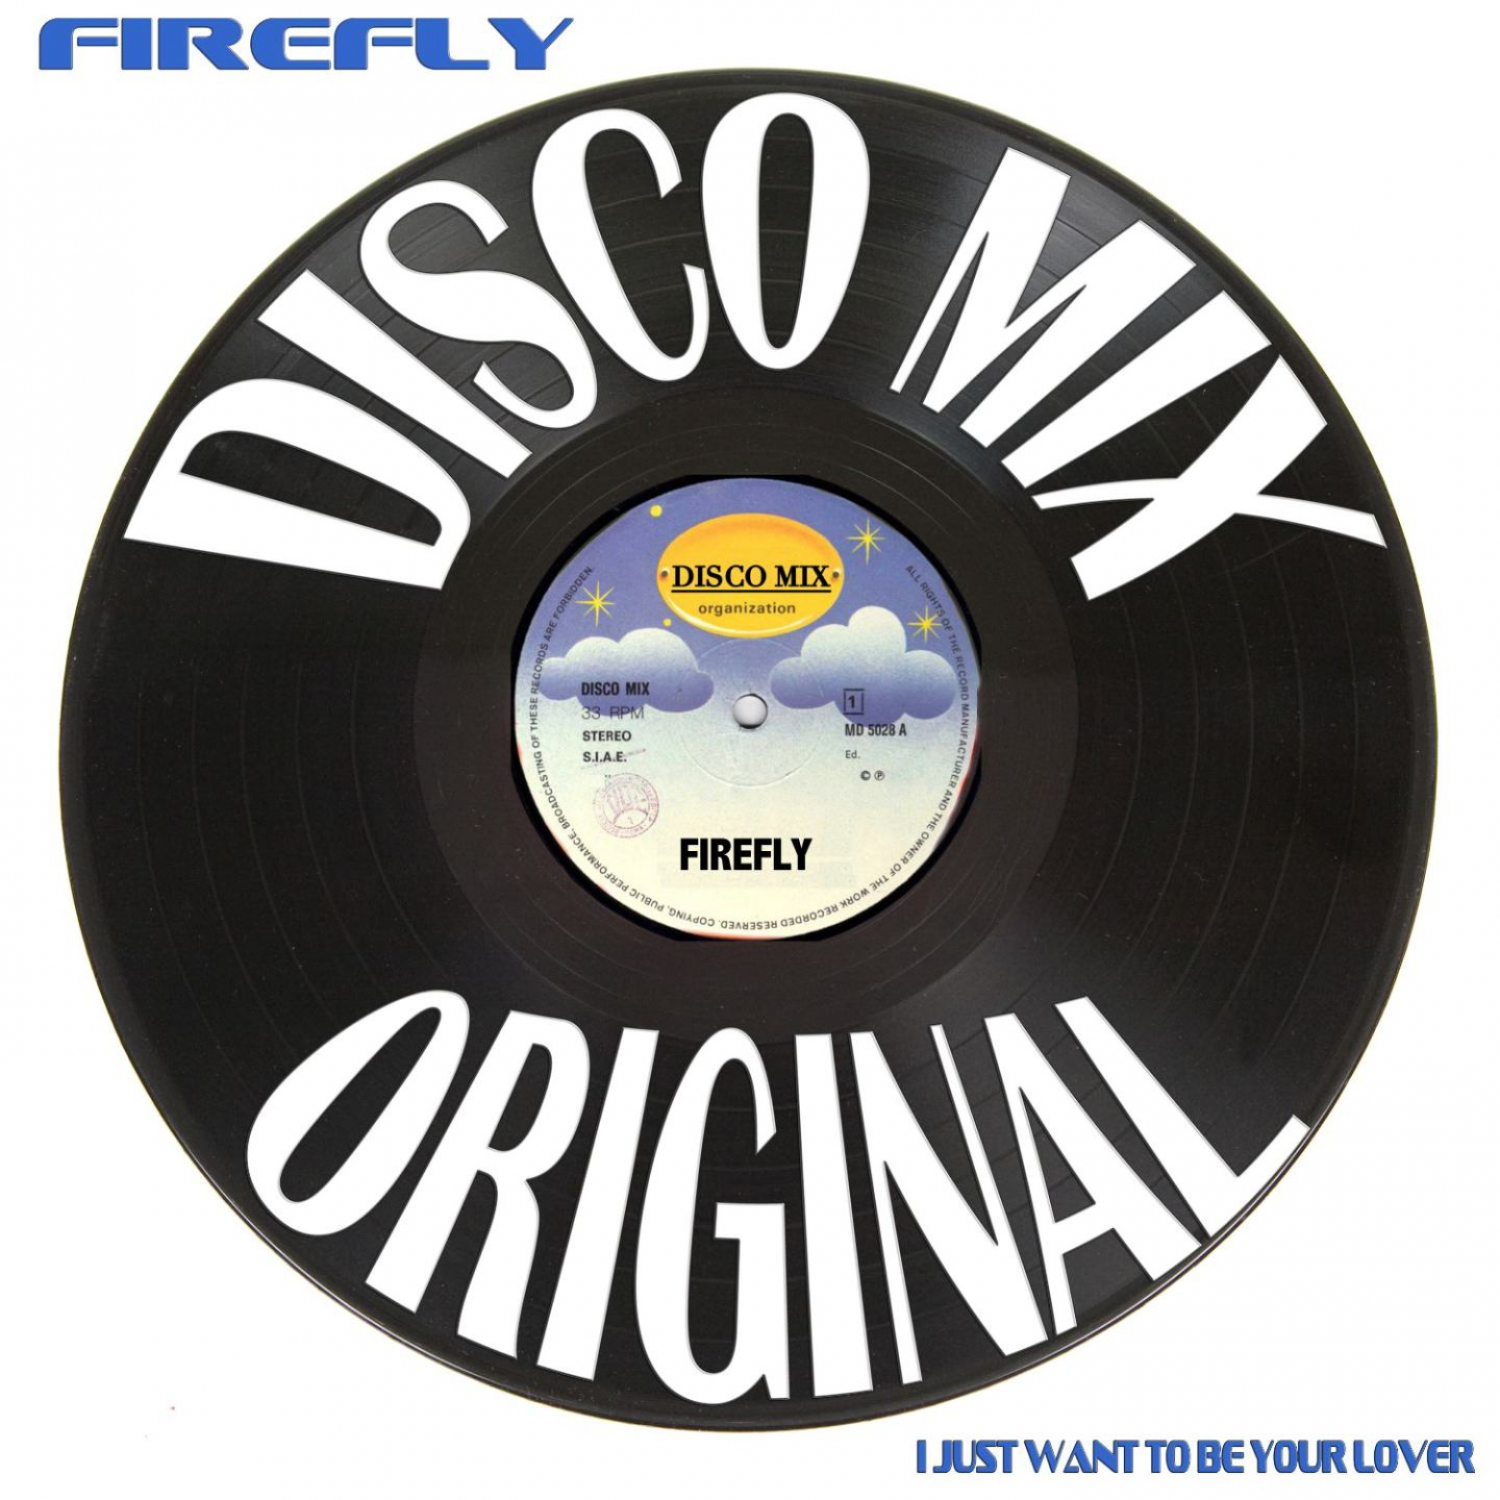 Firefly - I Just Want to Be Your Lover (Extended Version)